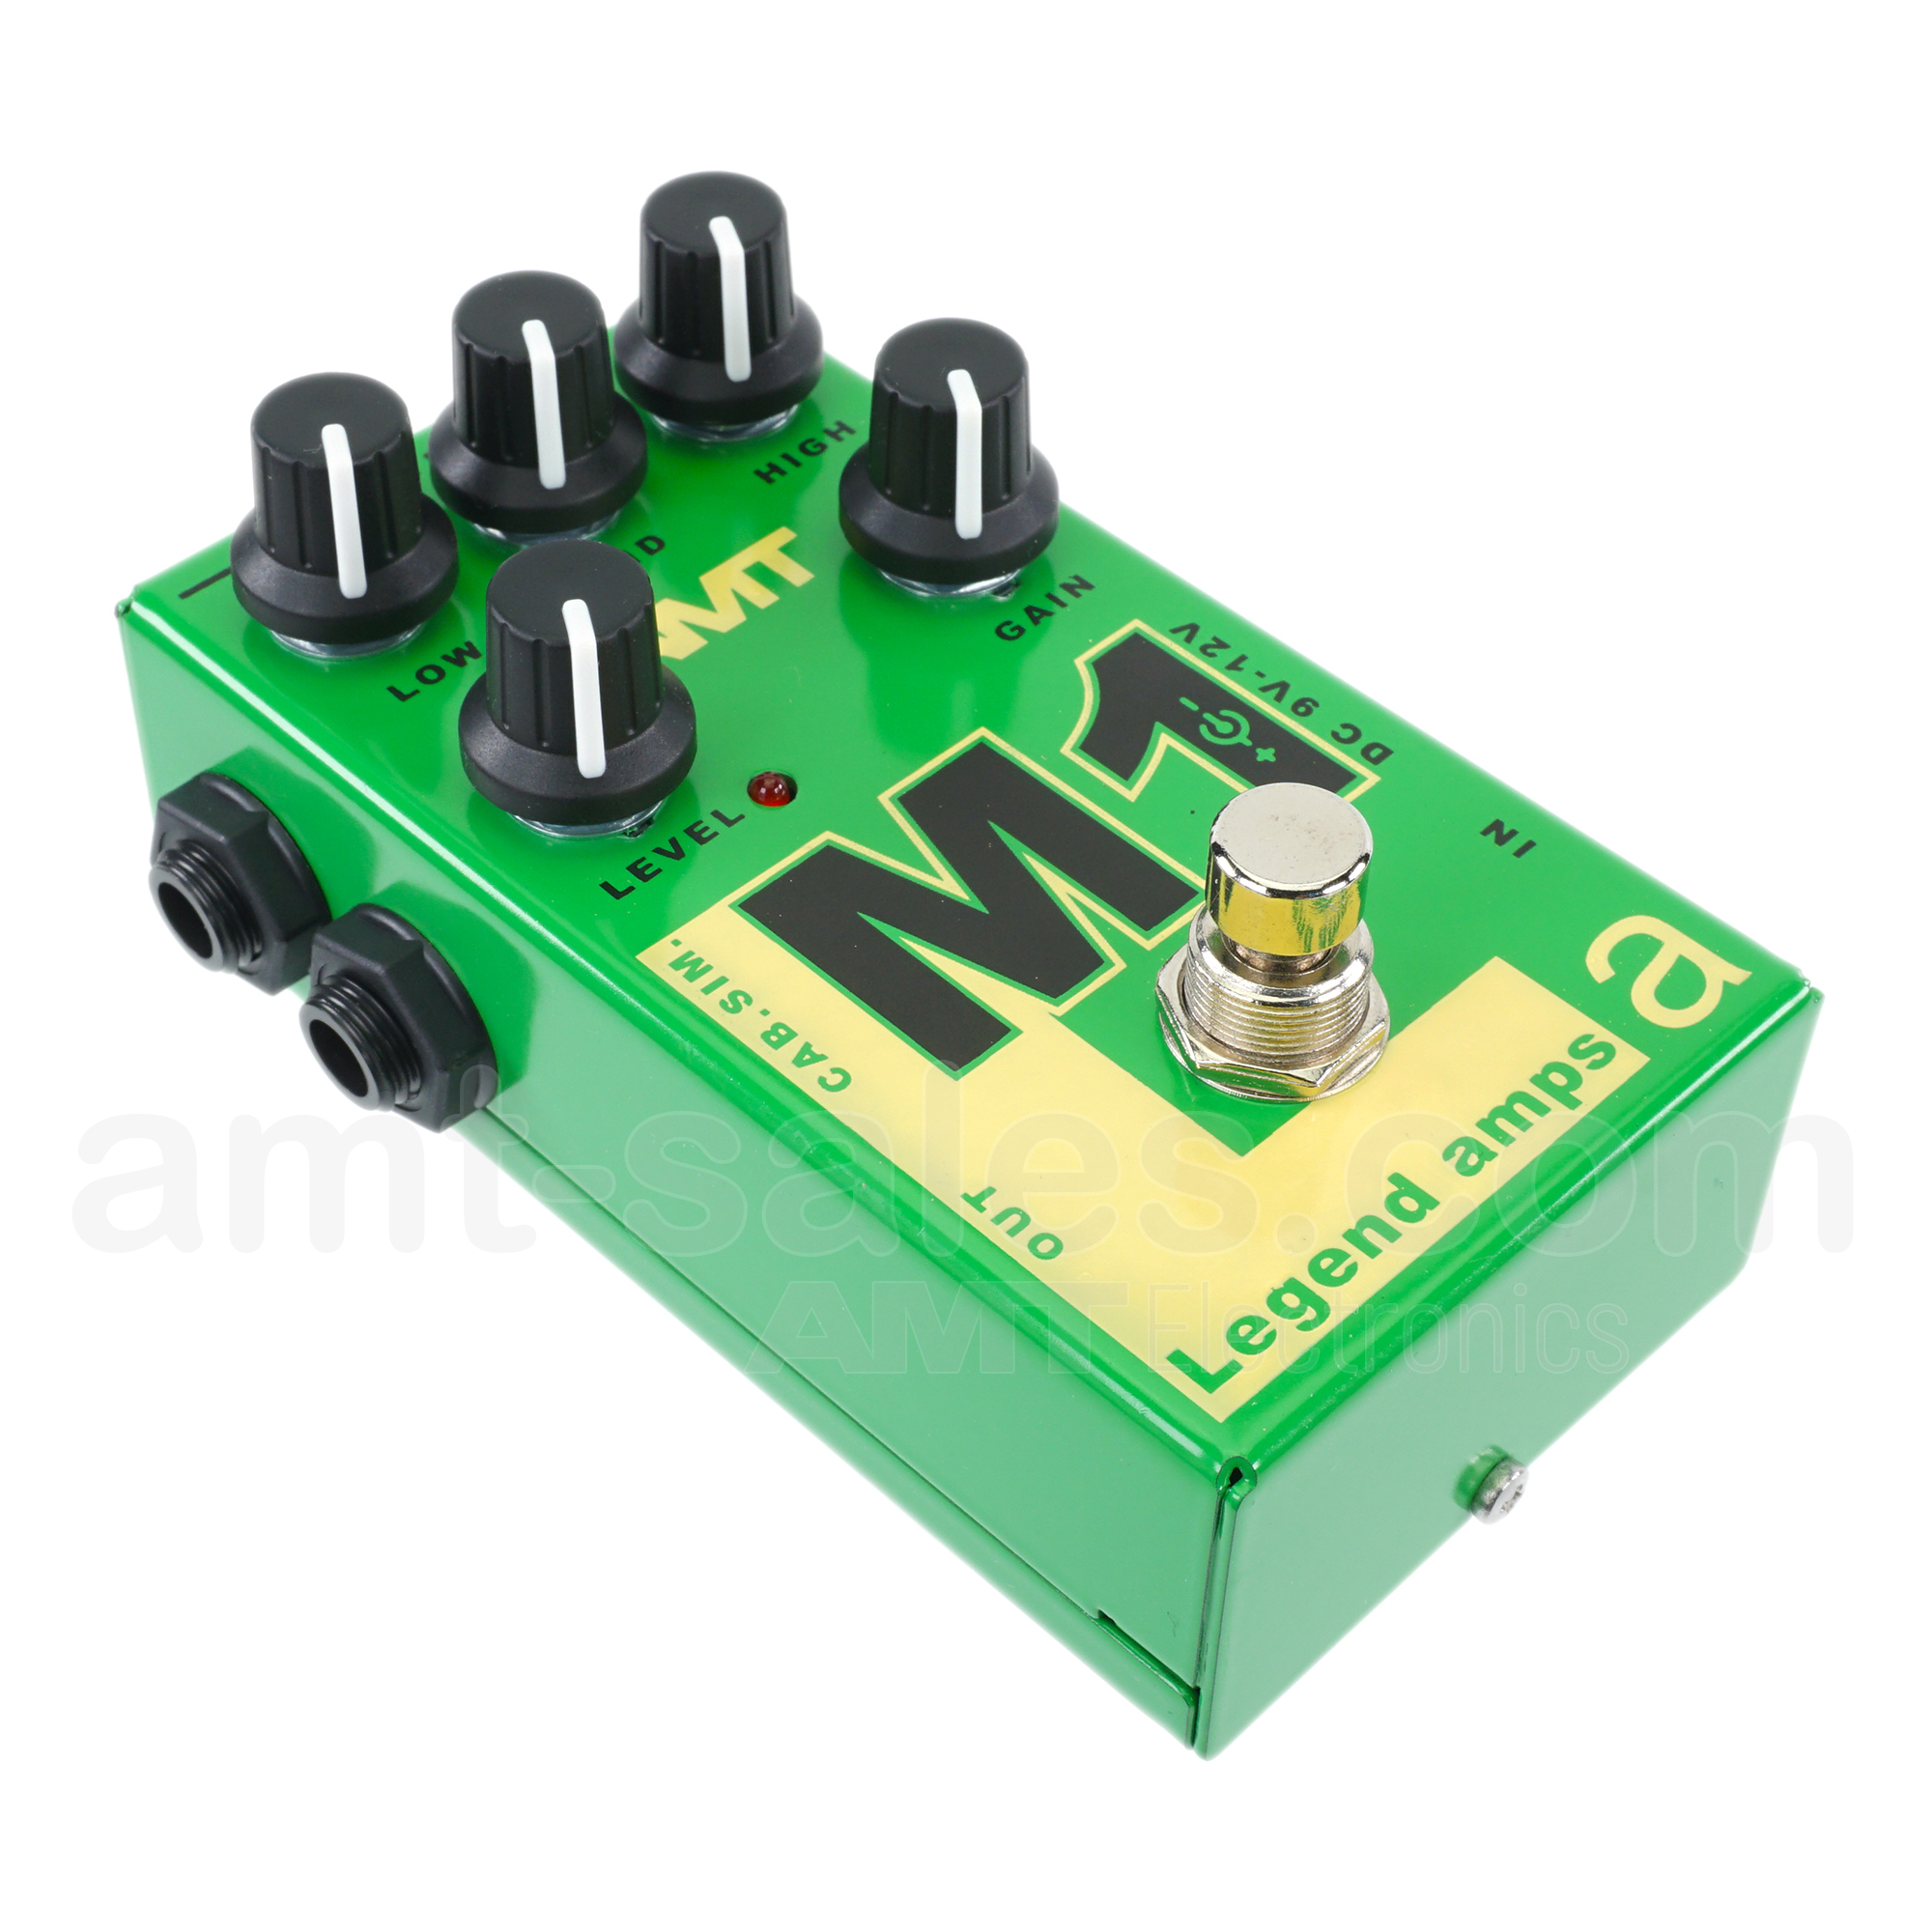 AMT M1 - JFET guitar preamp (1 channel) Marshall